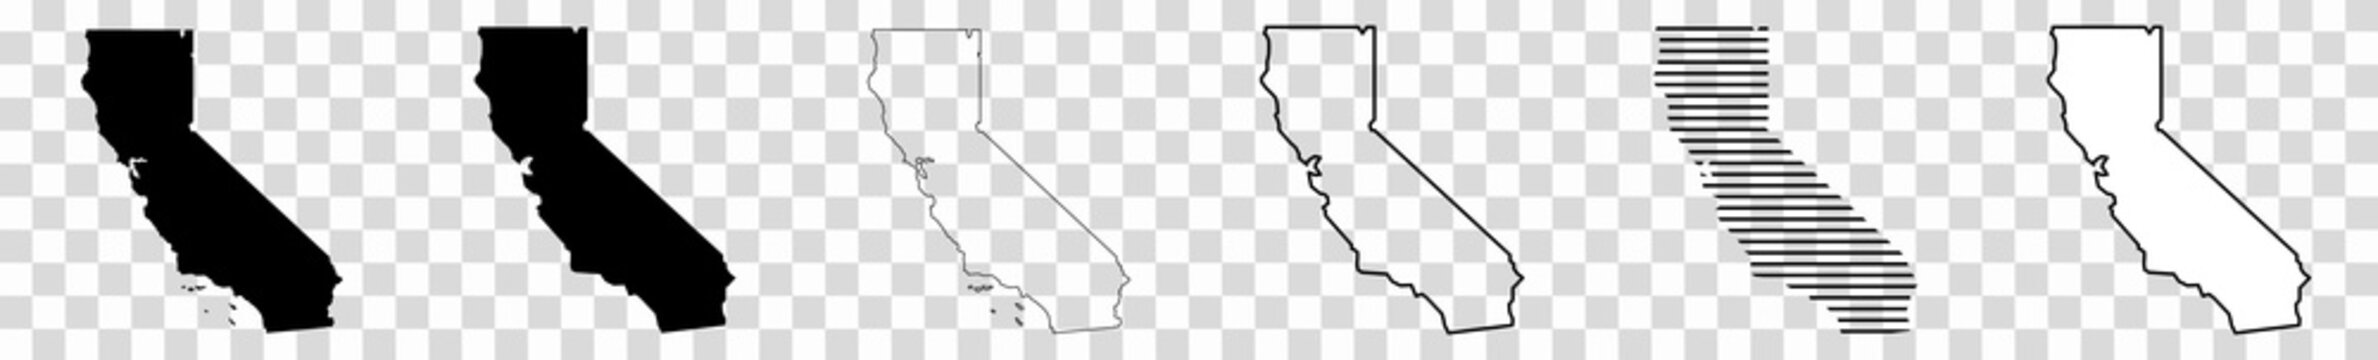 California Map Black | State Border | United States | US America | Transparent Isolated | Variations